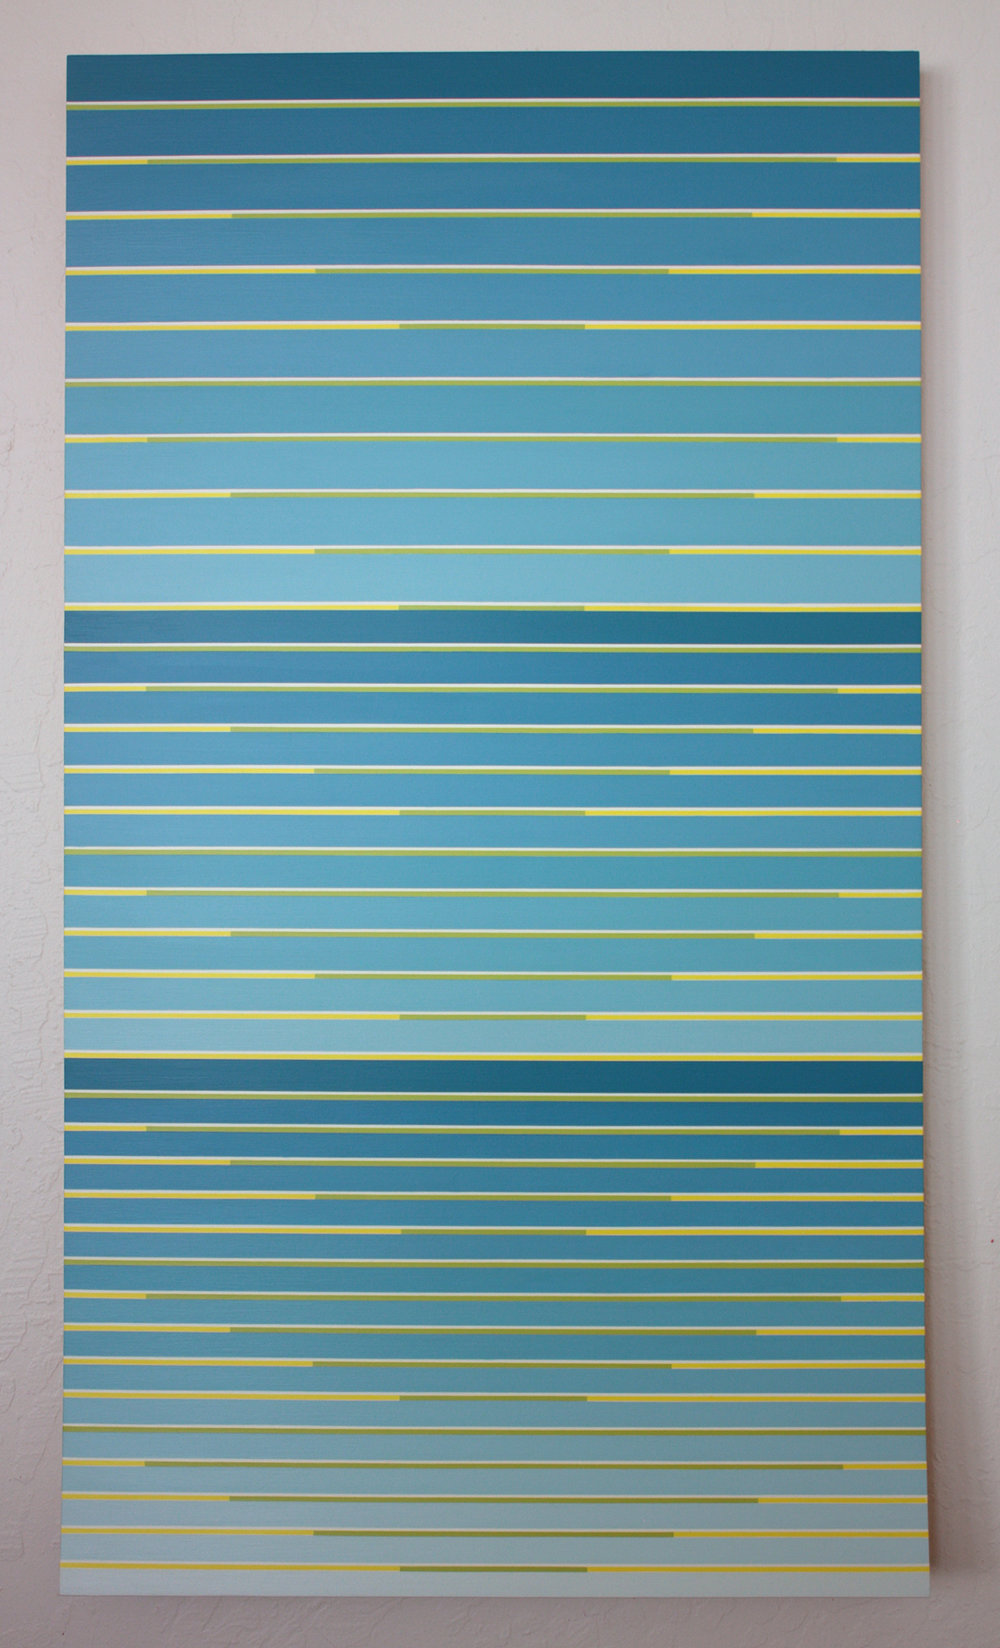 """Pulled Thru Infinity,"" 2017, acrylic on panel, 45 x 25 inches"